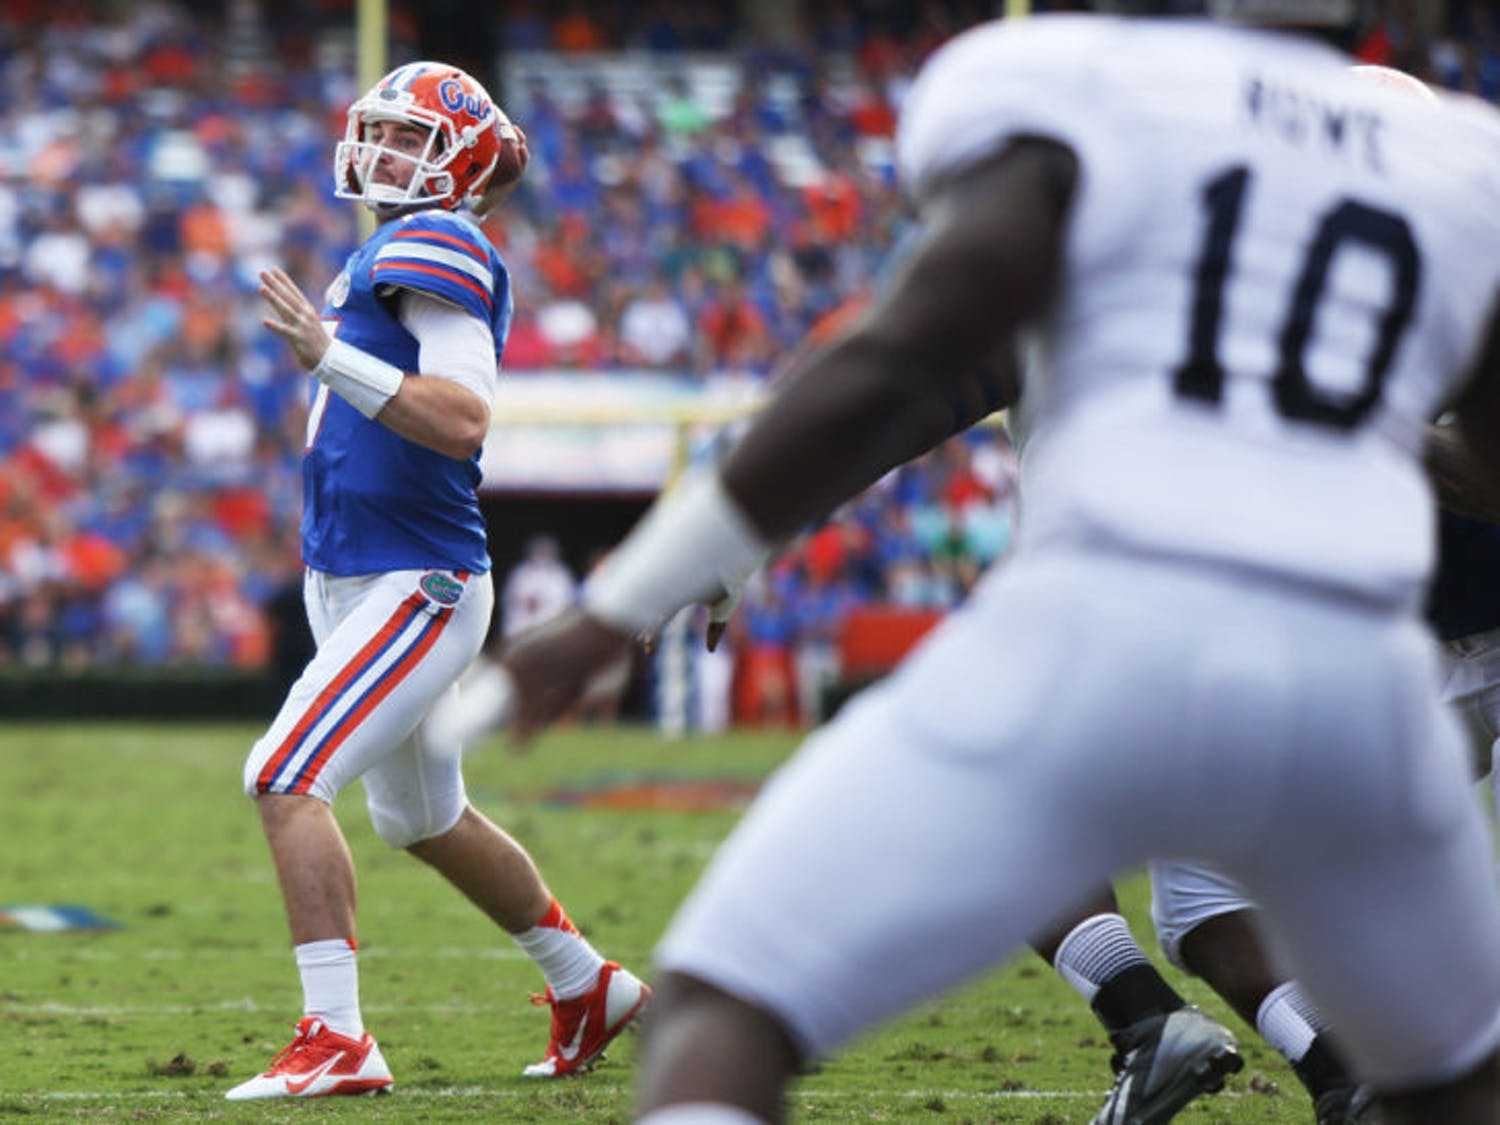 Skyler Mornhinweg (17) attempts a pass during Florida's 26-20 loss to Georgia Southern on Saturday in Ben Hill Griffin Stadium. Mornhinweg finished the game 14 of 25 passing for 122 yards and two touchdowns.